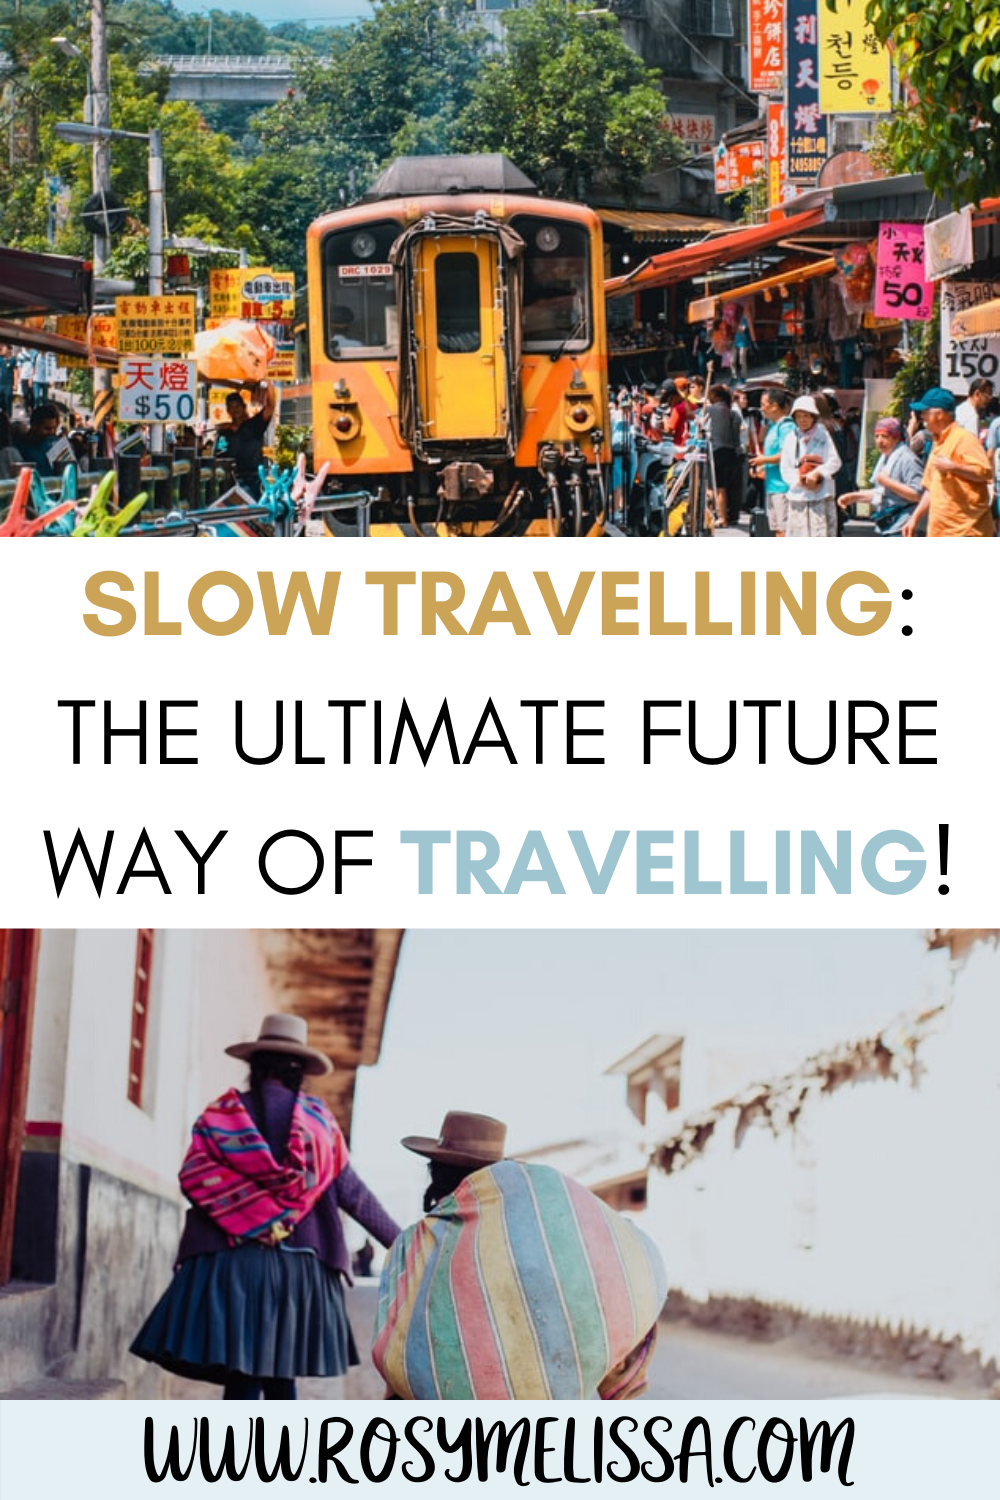 slow travelling, a new way of travelling in the future, responsible travel, sustainable travel, green travel, leave a positive impact on the destination